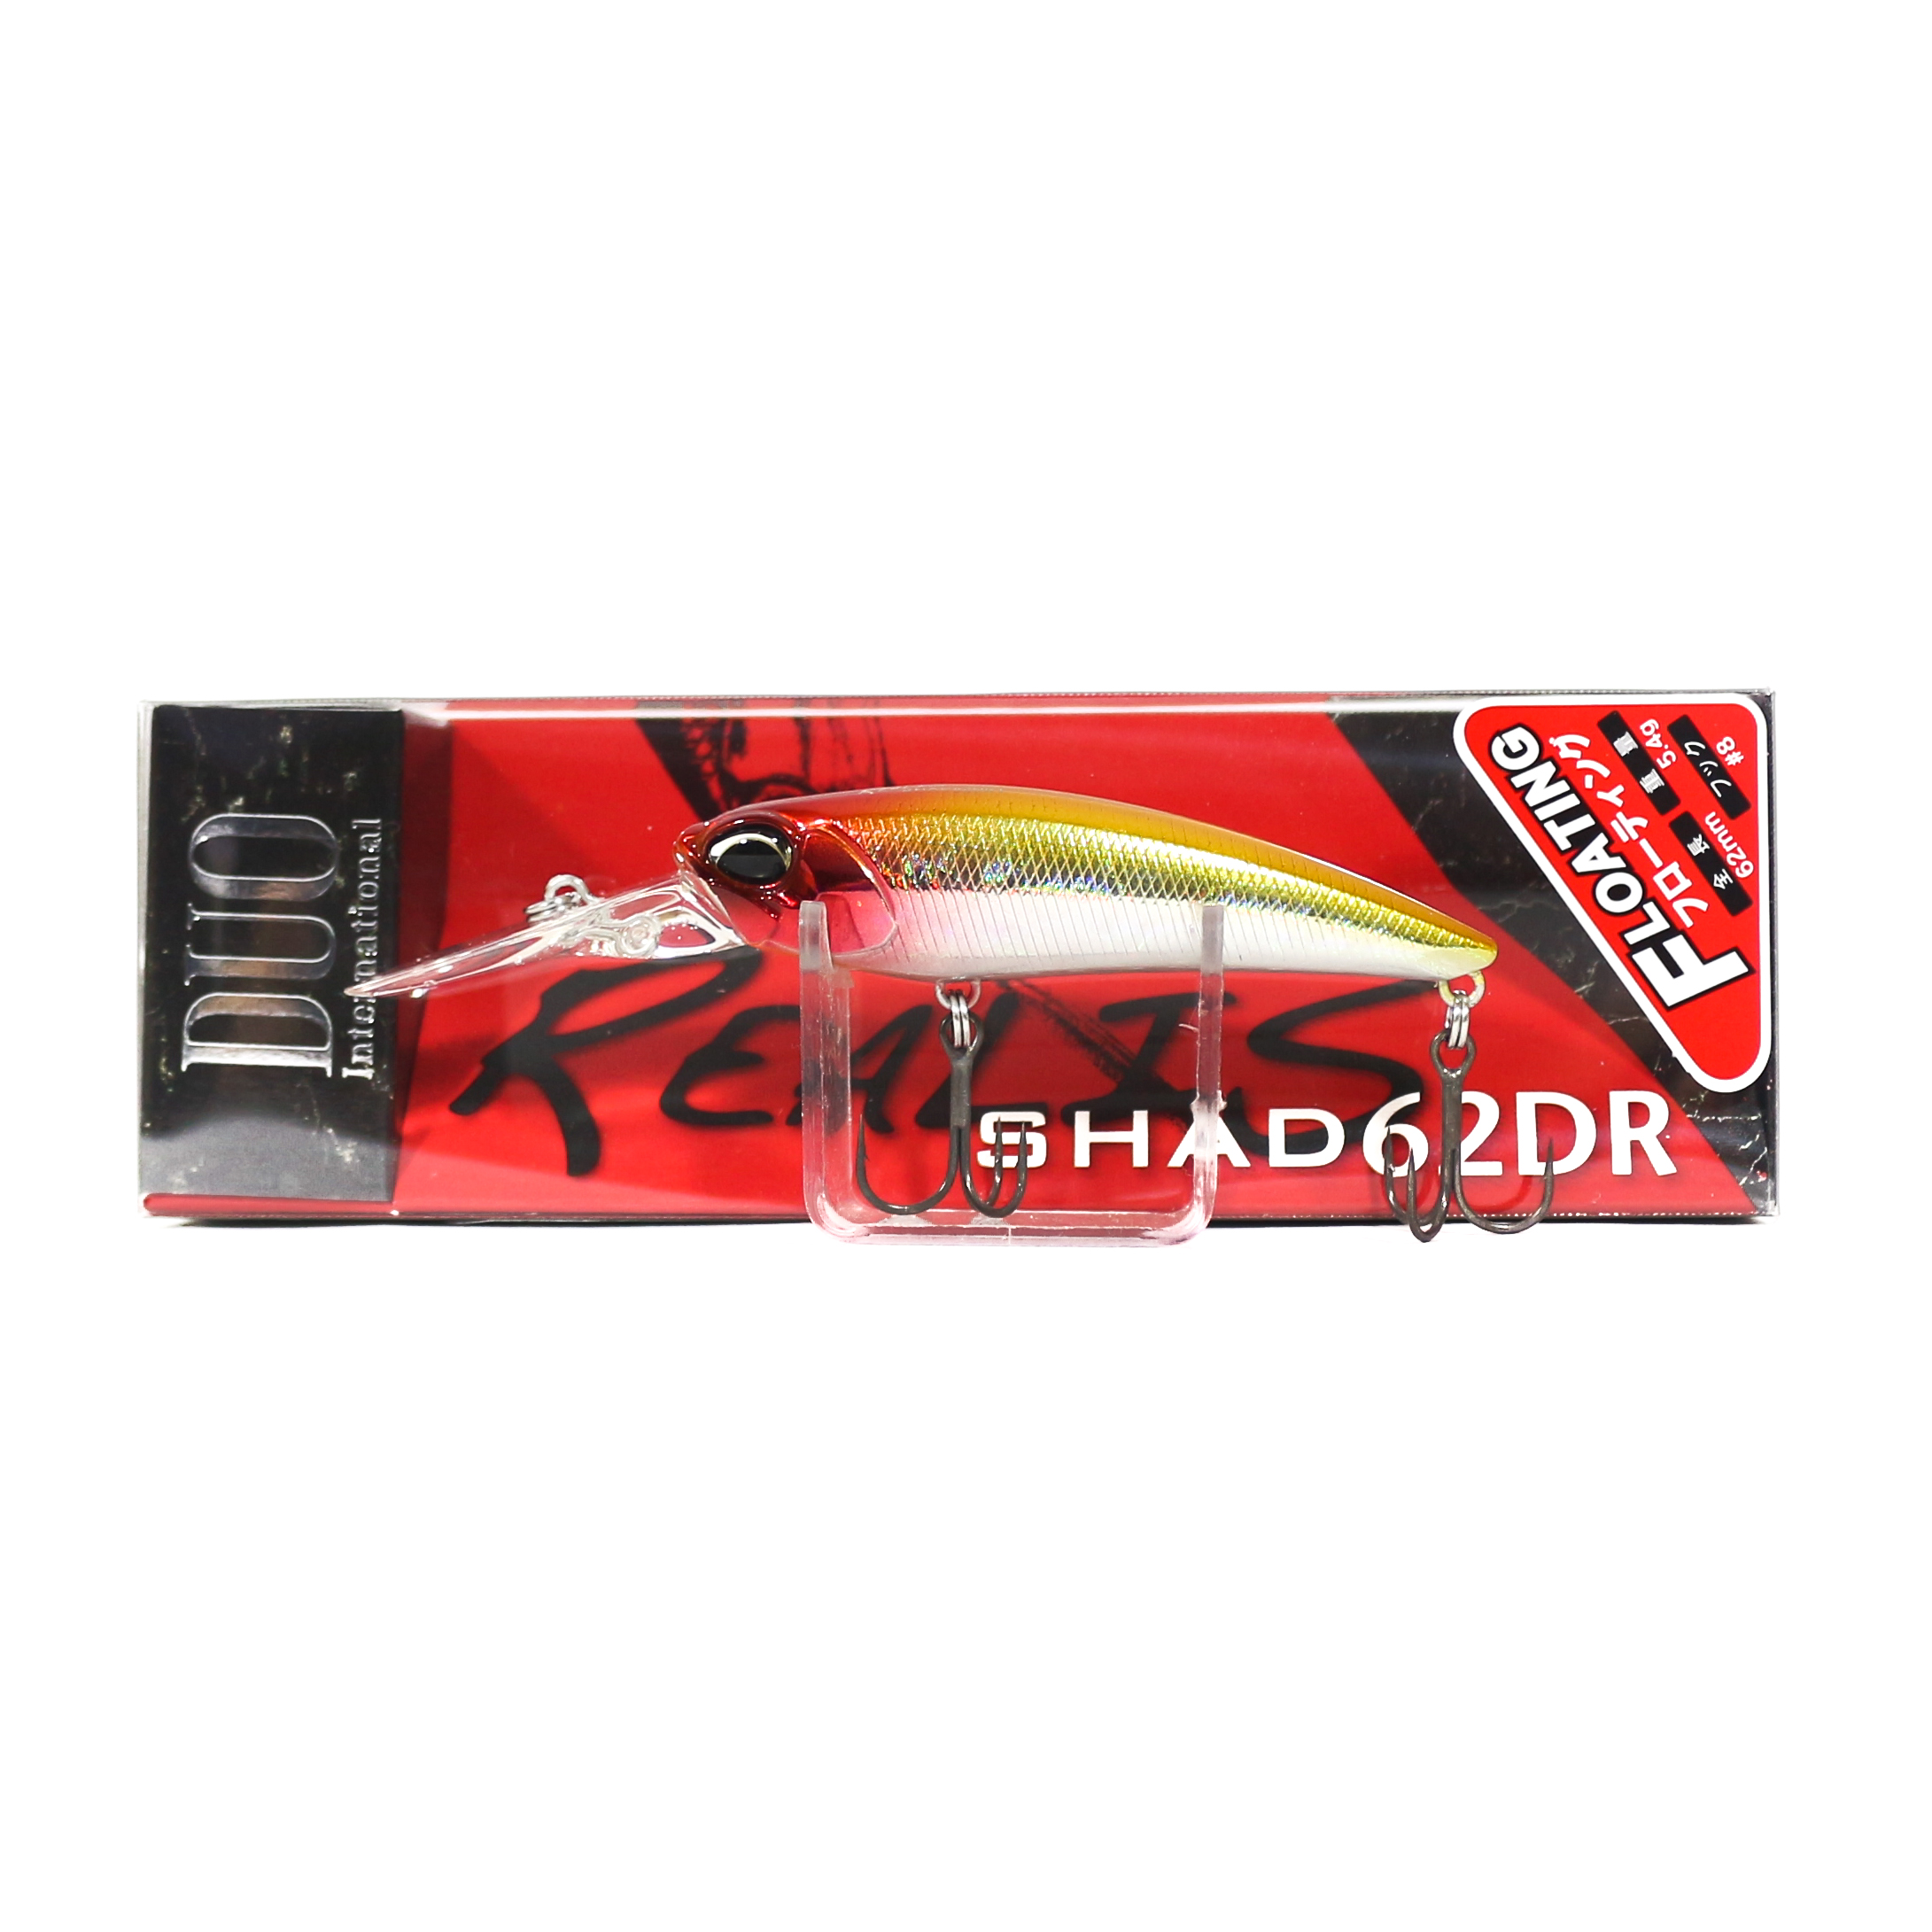 Duo Realis Shad 62 DR F Floating Lure ADA3033 (5796)